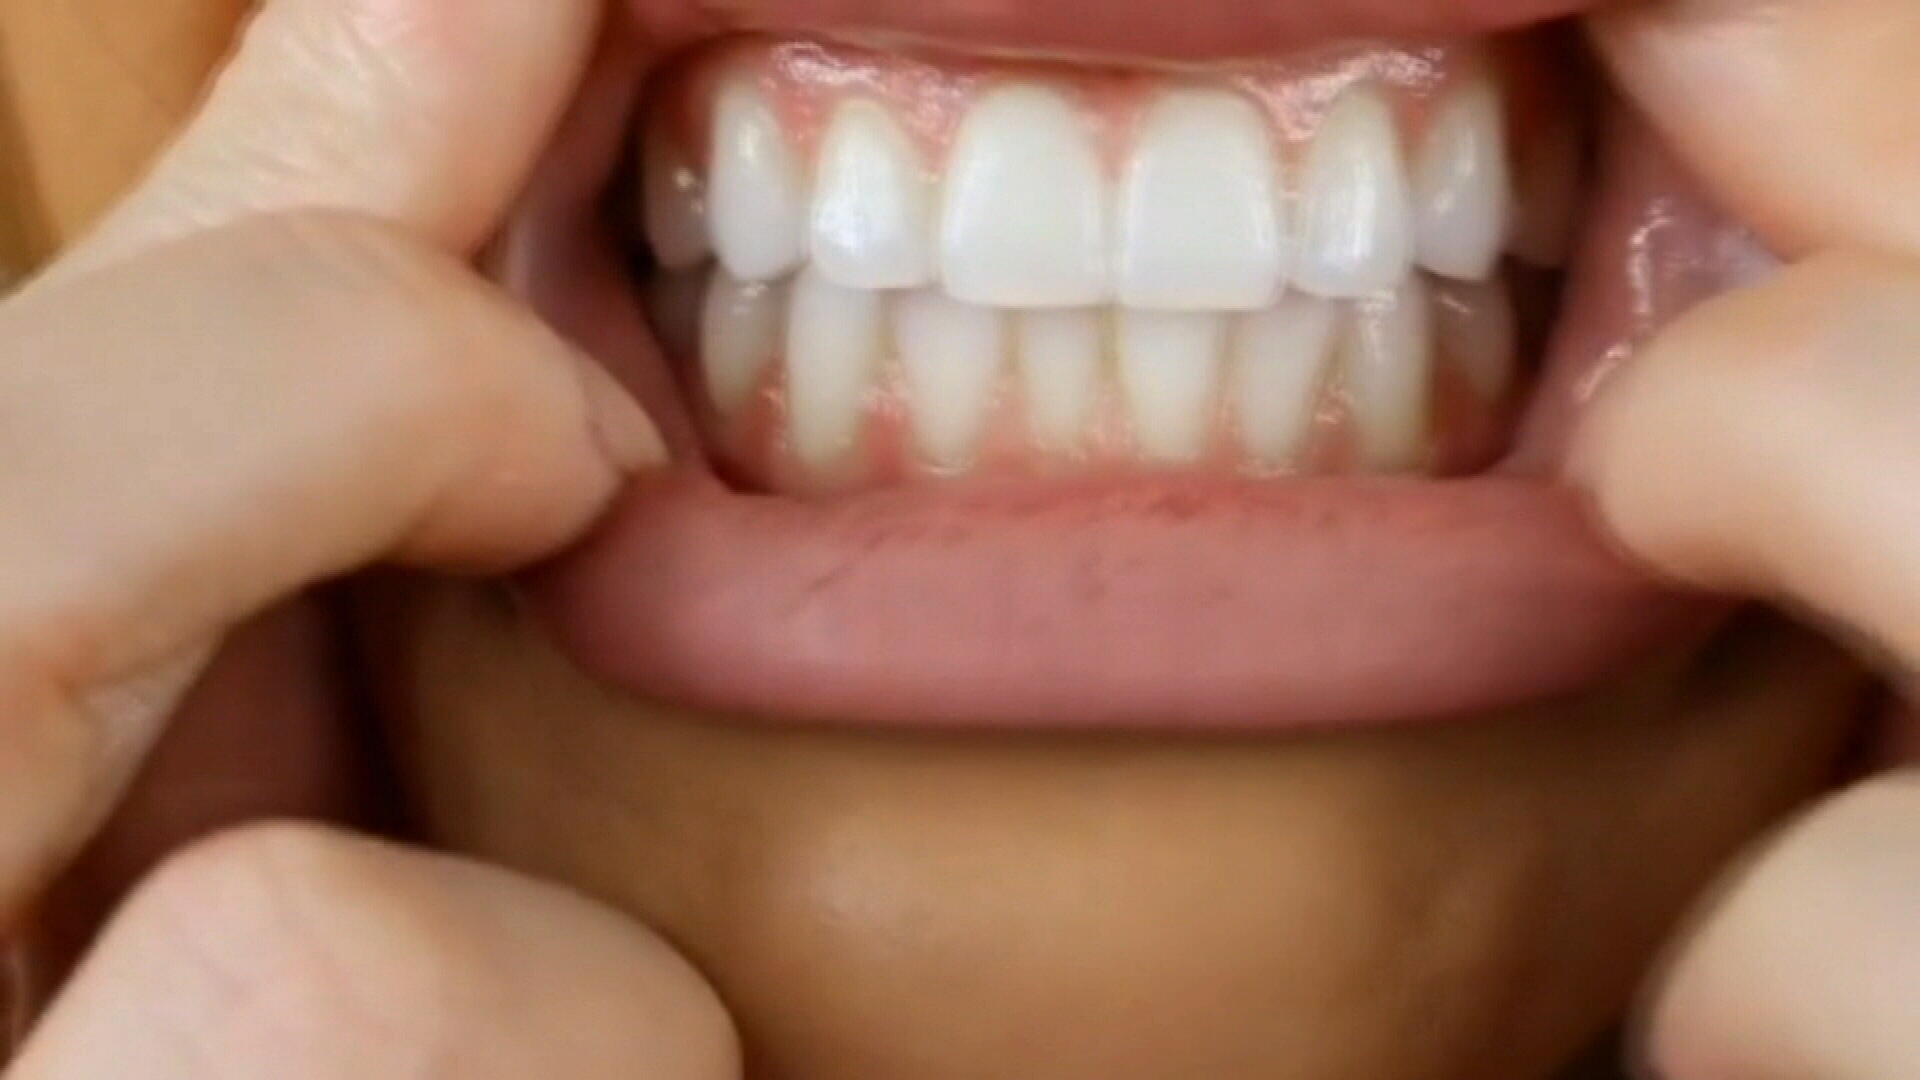 Global Teeth Whitening Products Market Analyze By Top Leading Companies Like GlaxoSmithKline, Colgate-Palmolive, Henkel, Johnson & Johnson, CCA Industries, Unilever, Church & Dwight, Brodie & Stone, Procter & Gamble and GO SMILE.